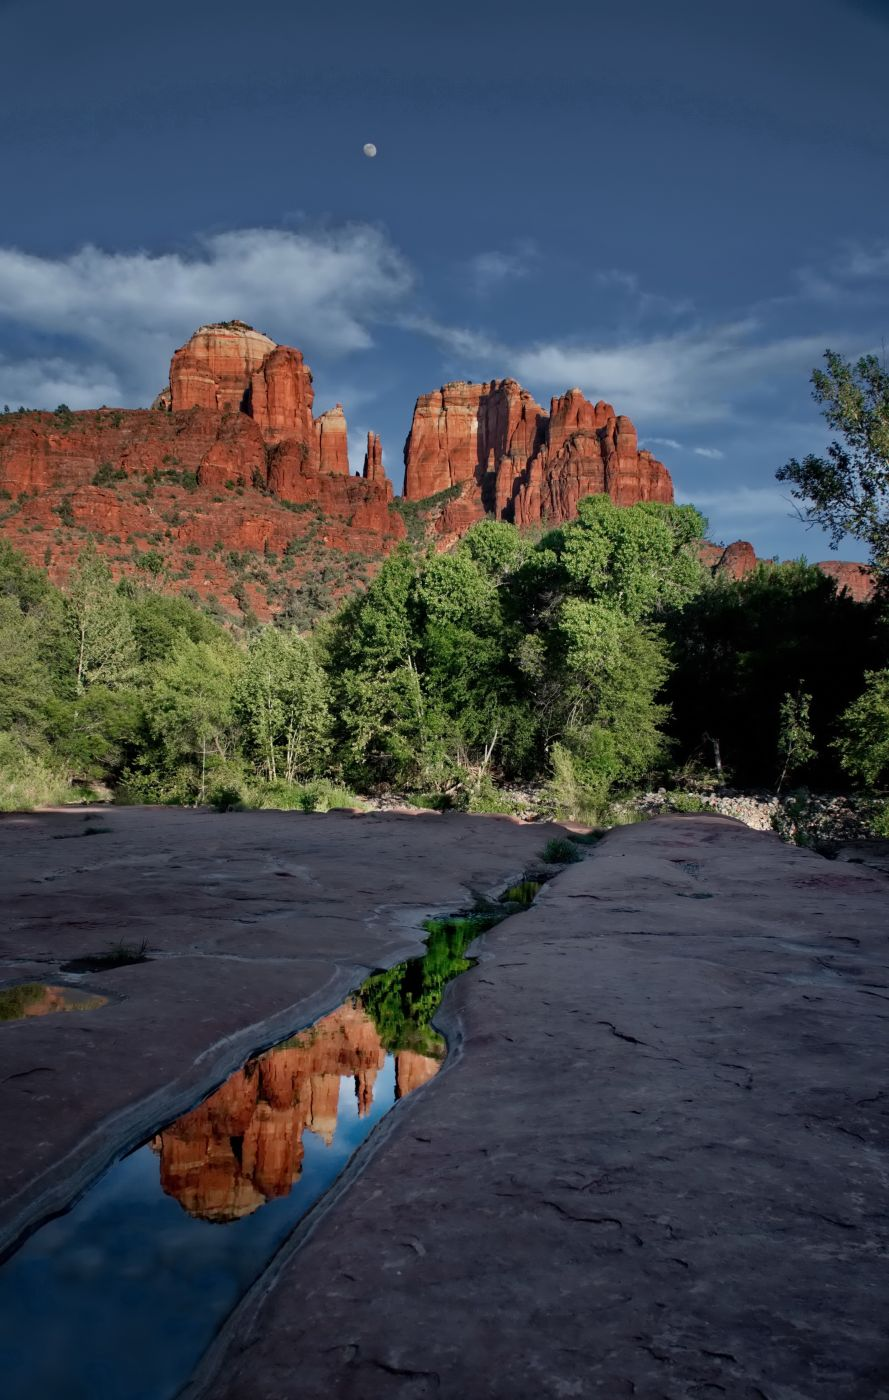 Cathederal Rock reflections, USA